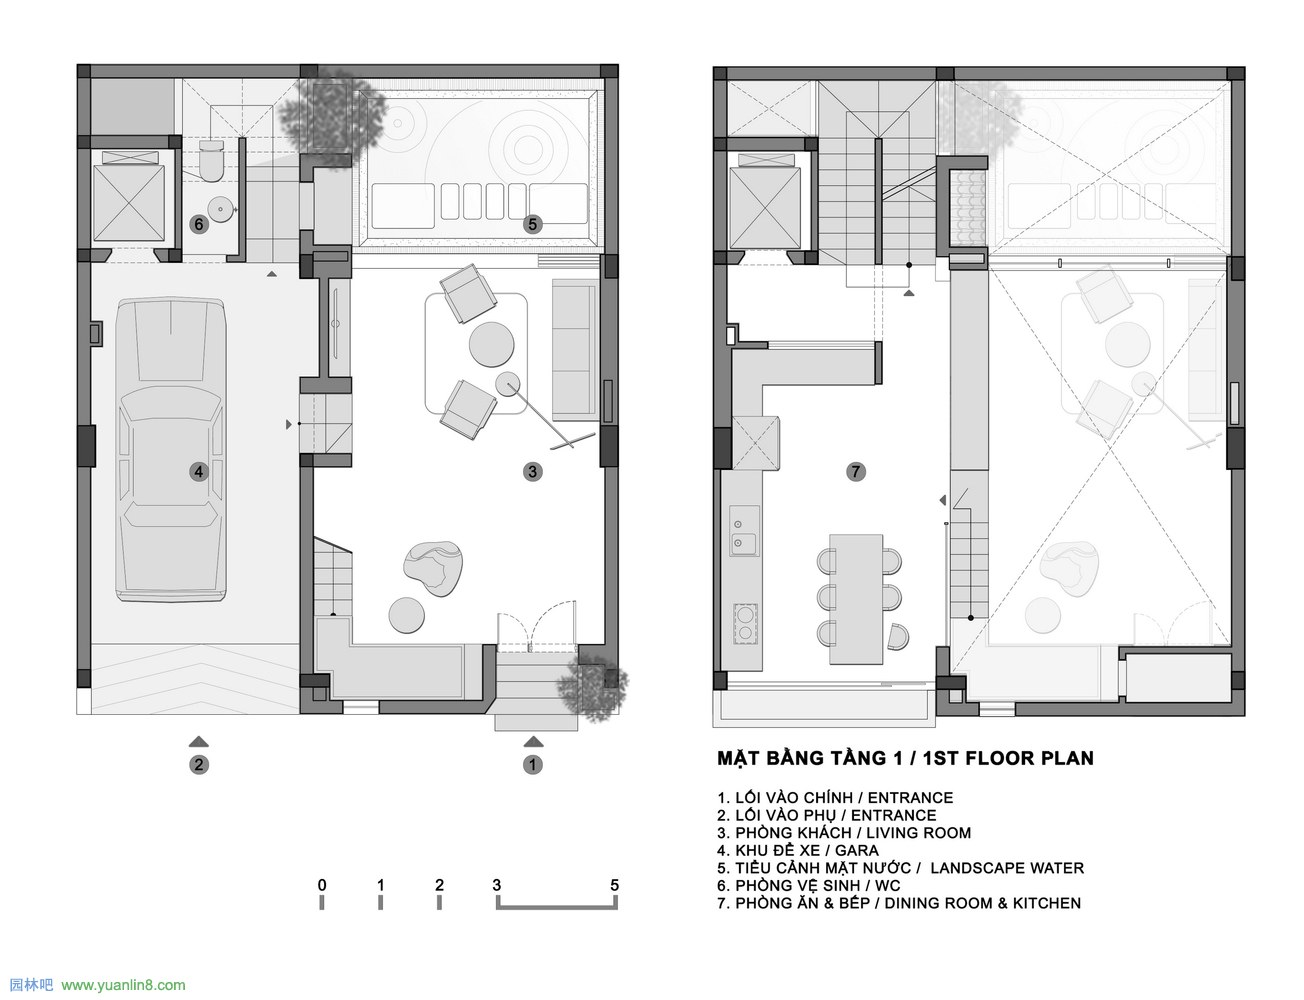 23-_1st_floor_plan